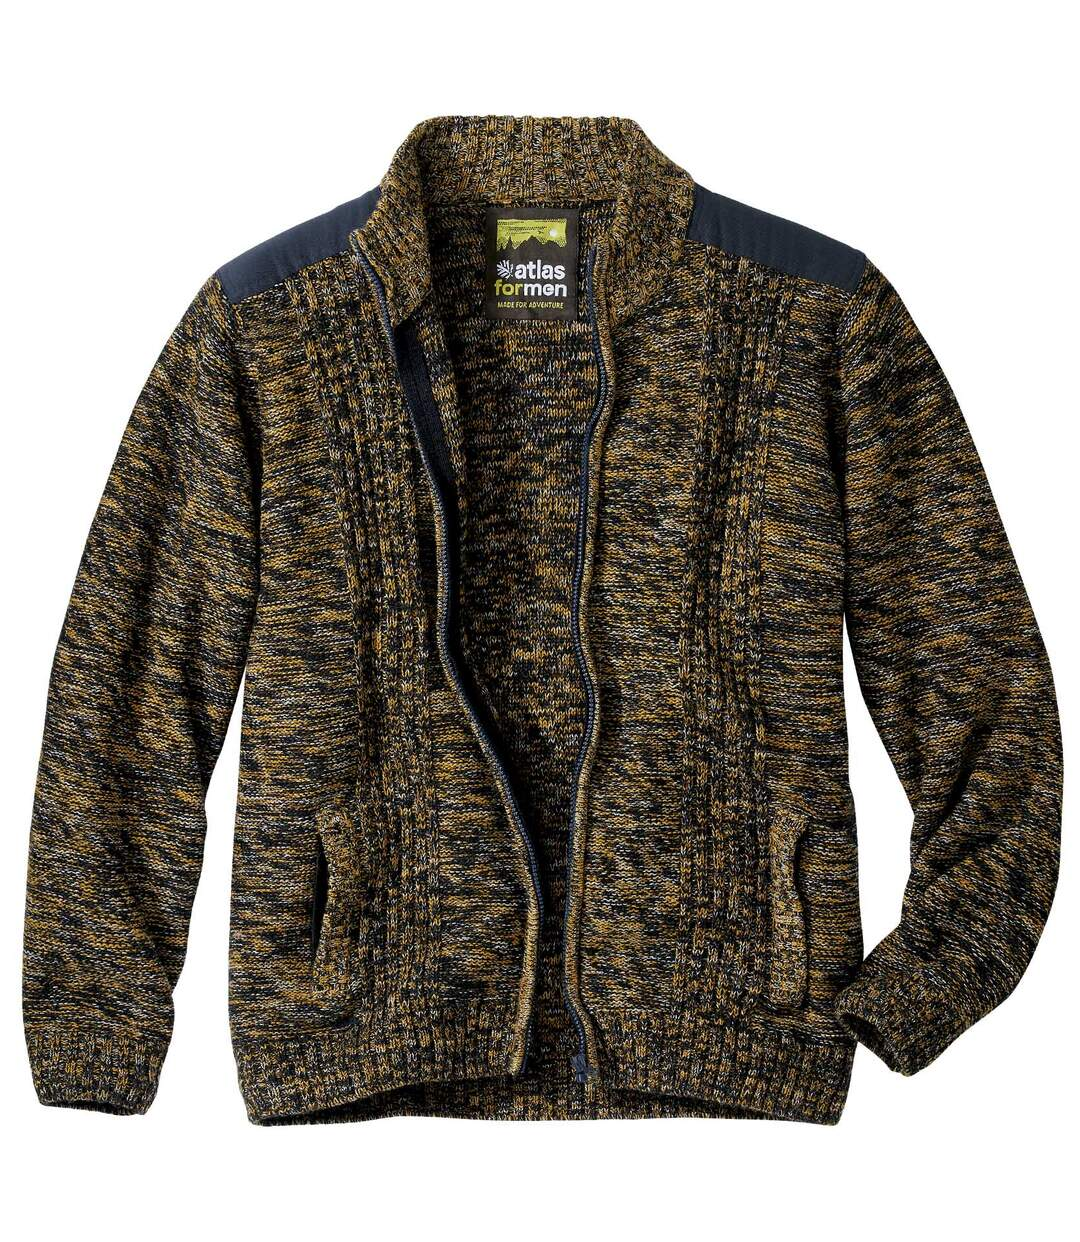 Trykotowy kardigan Casual Chic Atlas For Men